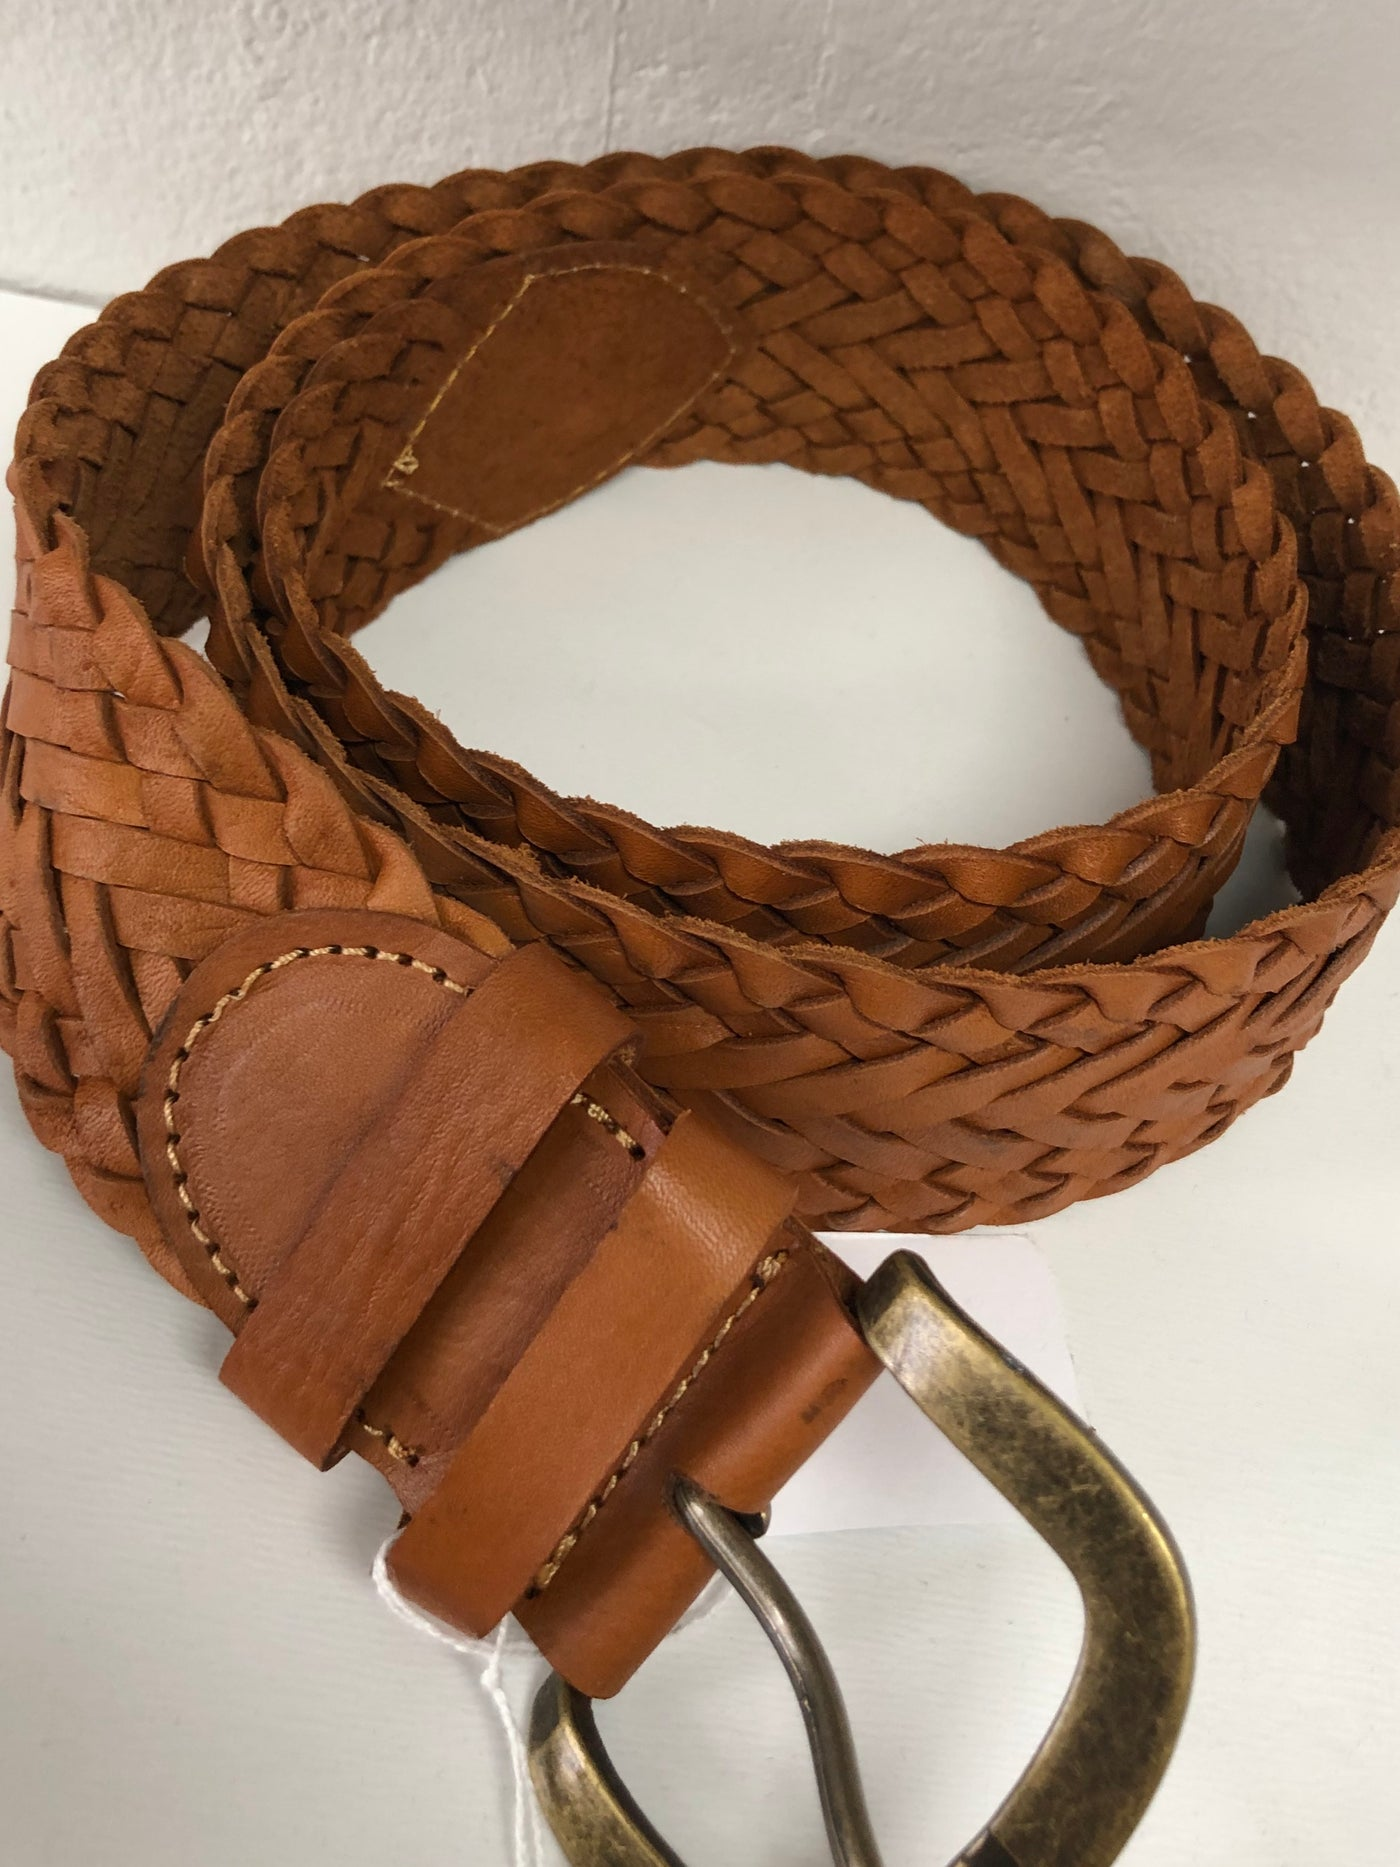 Legian Plaited leather Belt-Tan